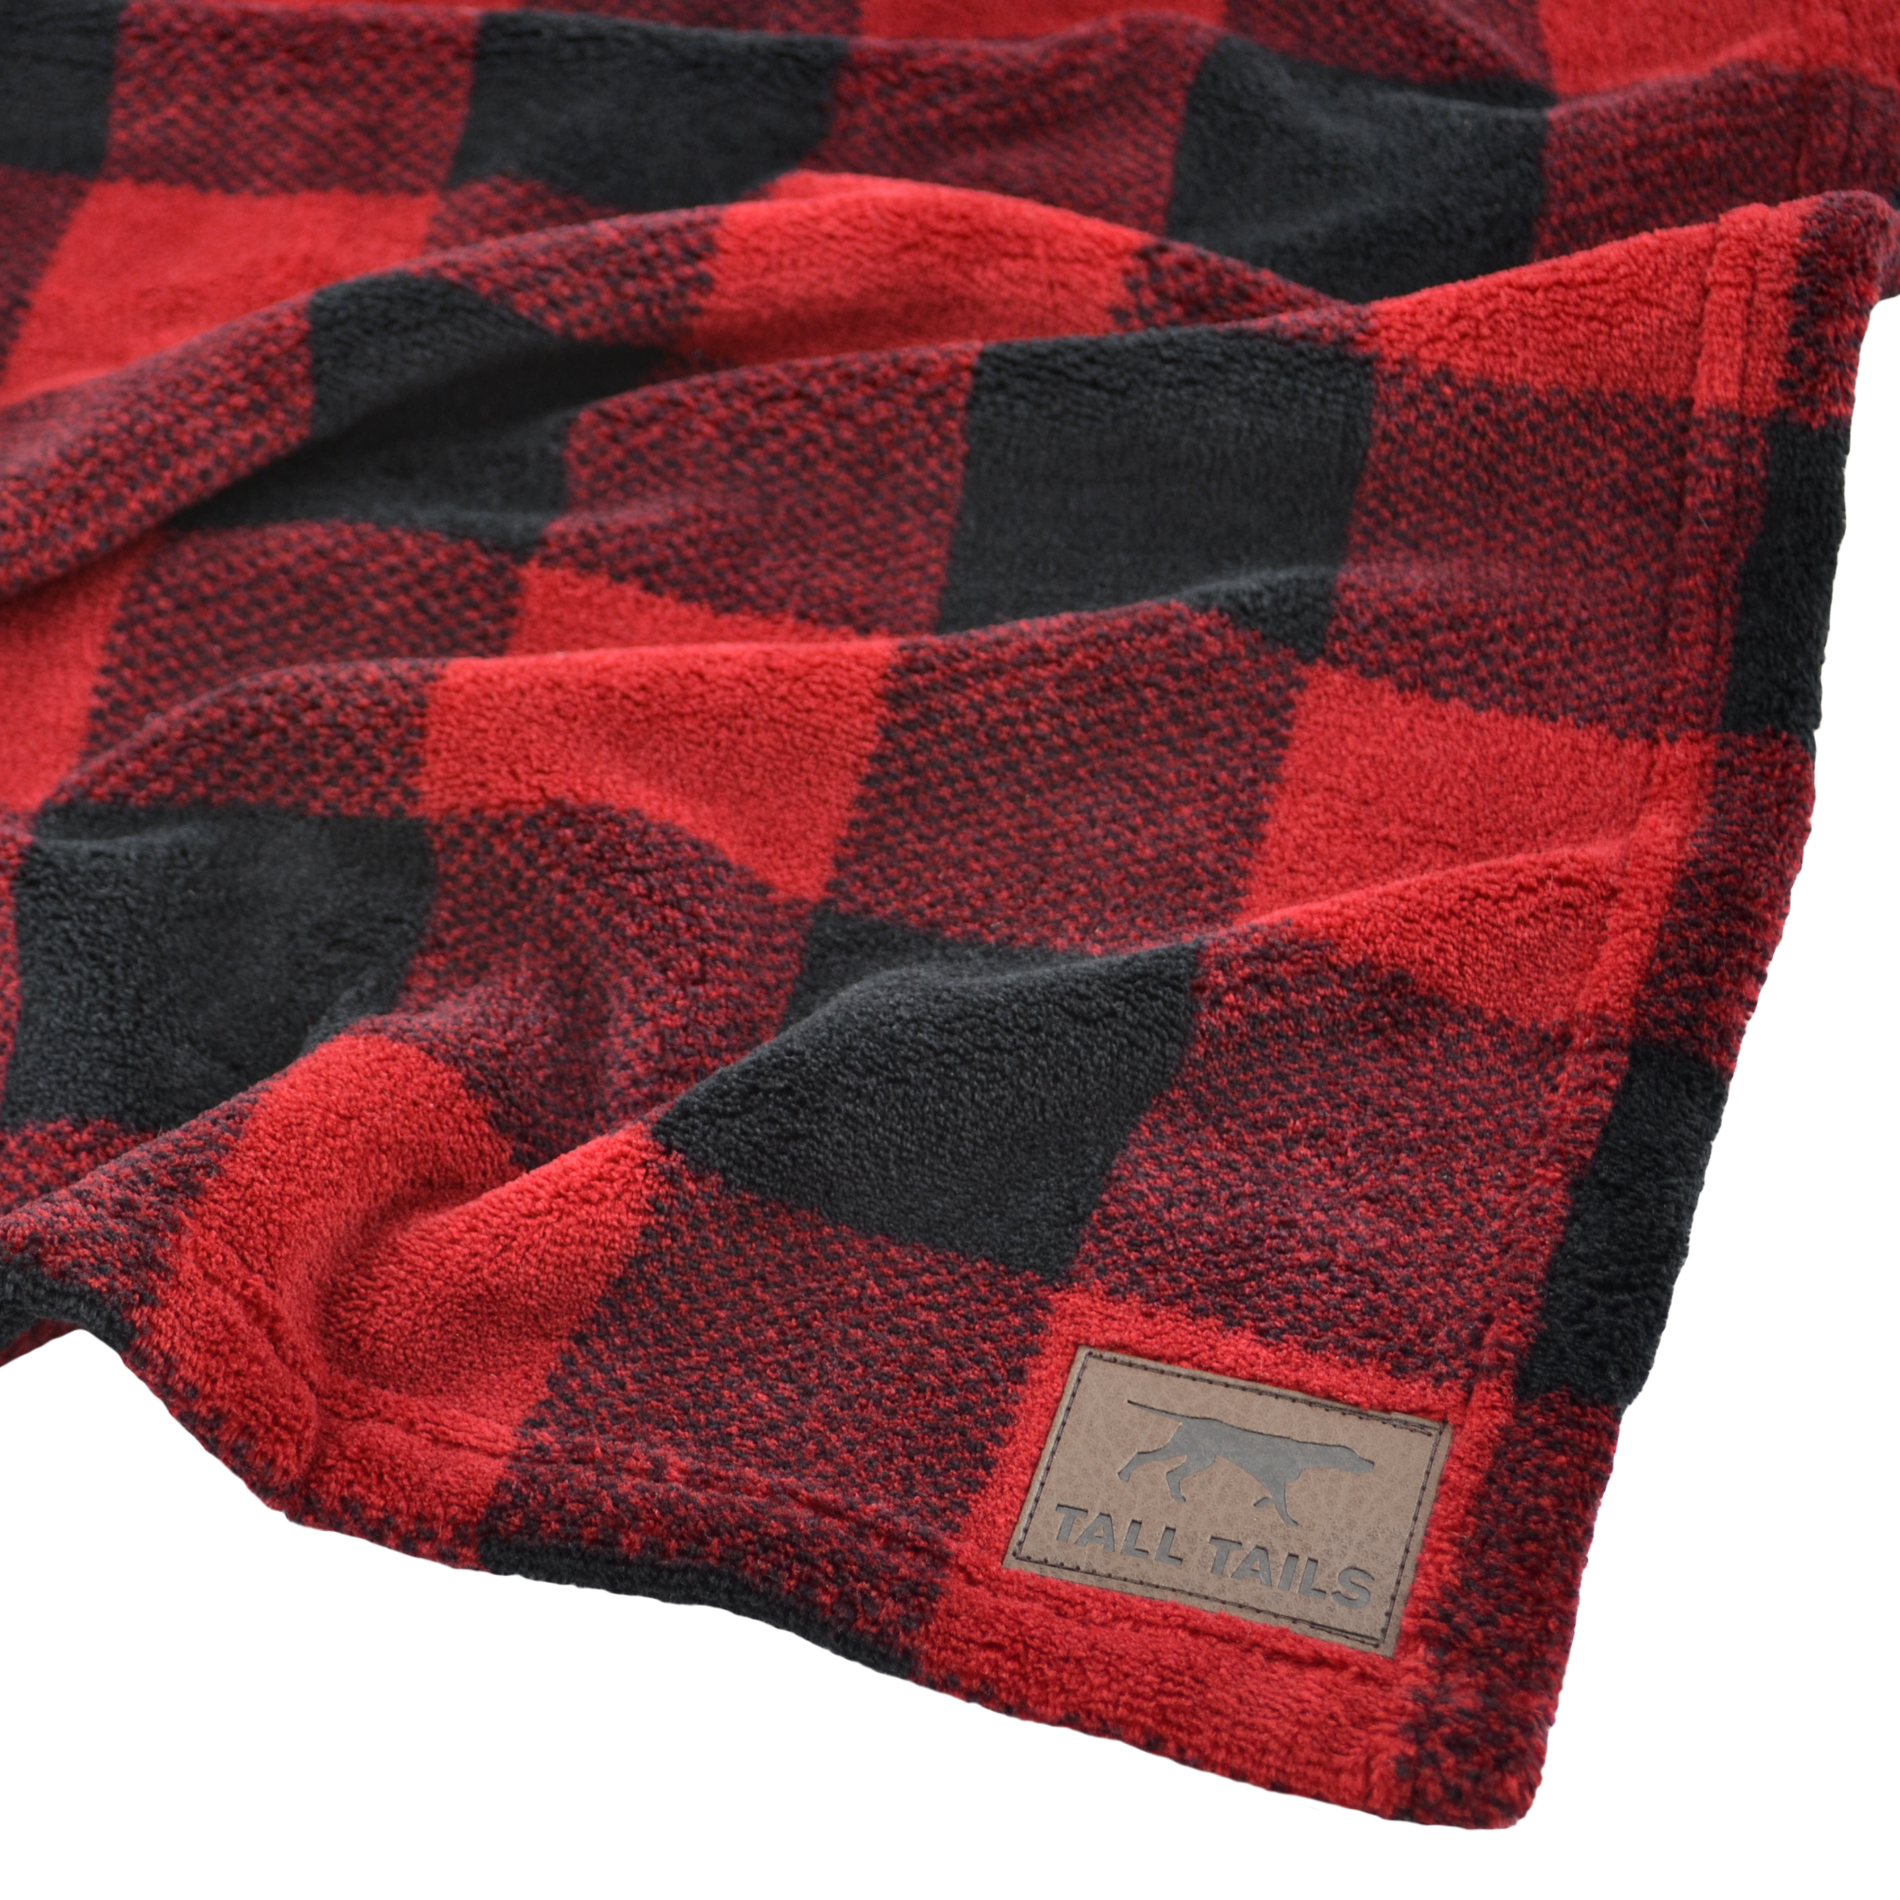 Tall Tails Dog Blanket, Hunter's Plaid, Red, 20 x 30